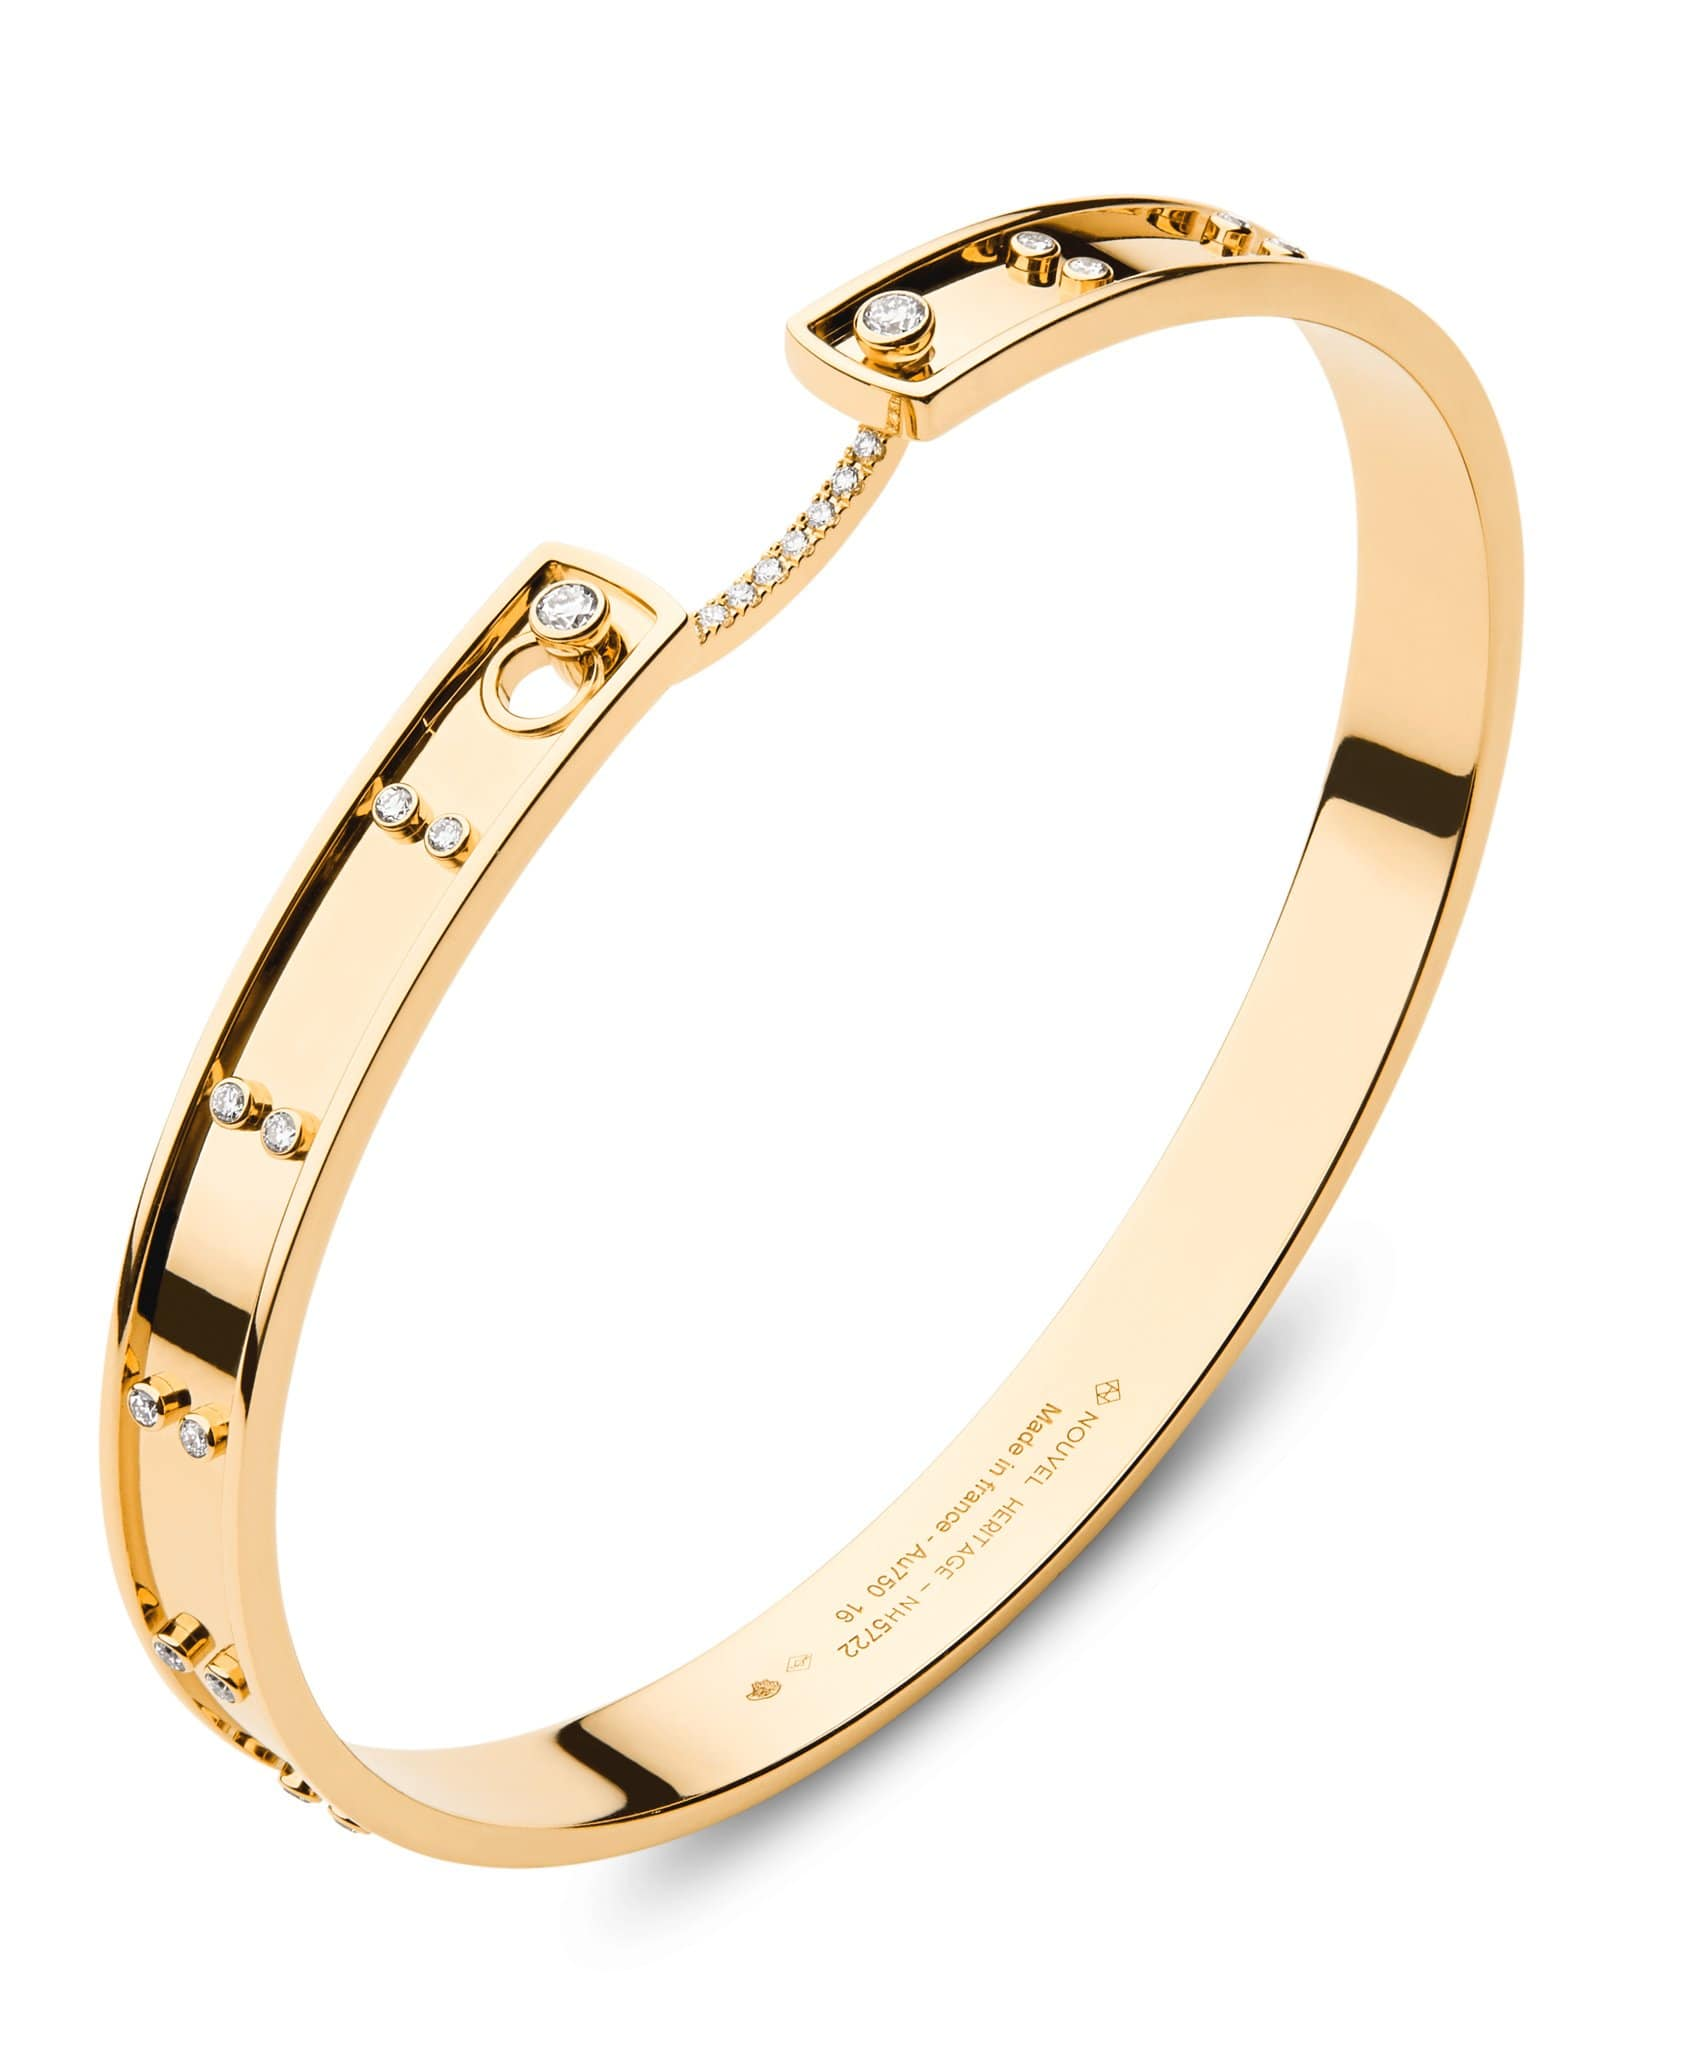 Picnic in Paris Mood Bangle: Discover Luxury Fine Jewelry | Nouvel Heritage